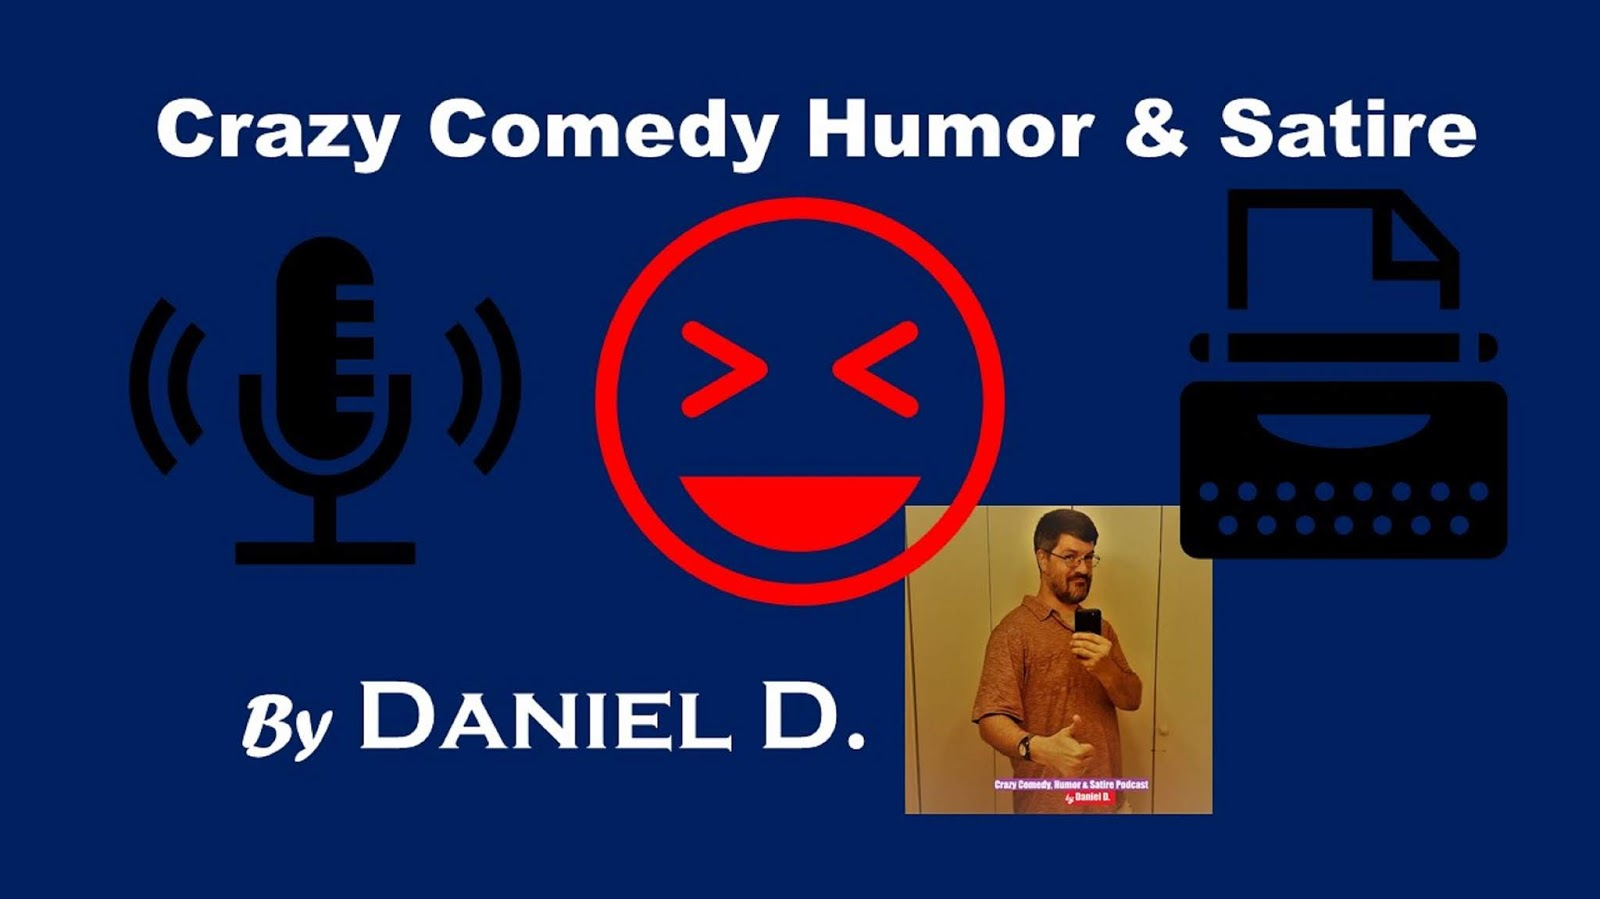 Satire And Parody By Ronnie Champ Humorist Daniel D S New Crazy